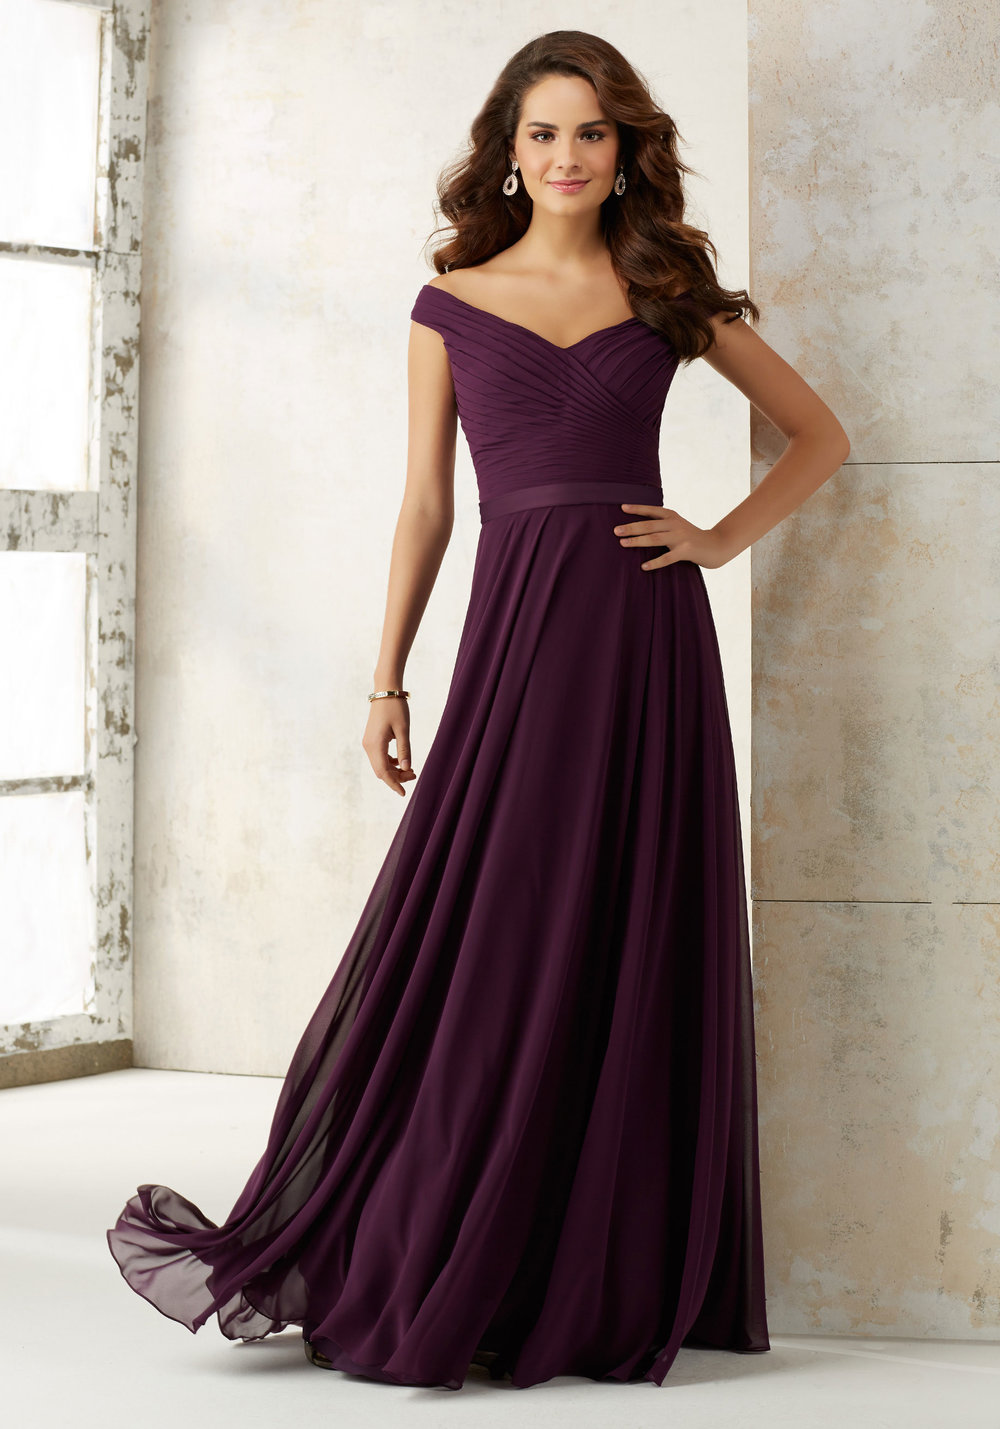 Mori Lee Off the shoulder Chiffon Bridesmaids dress